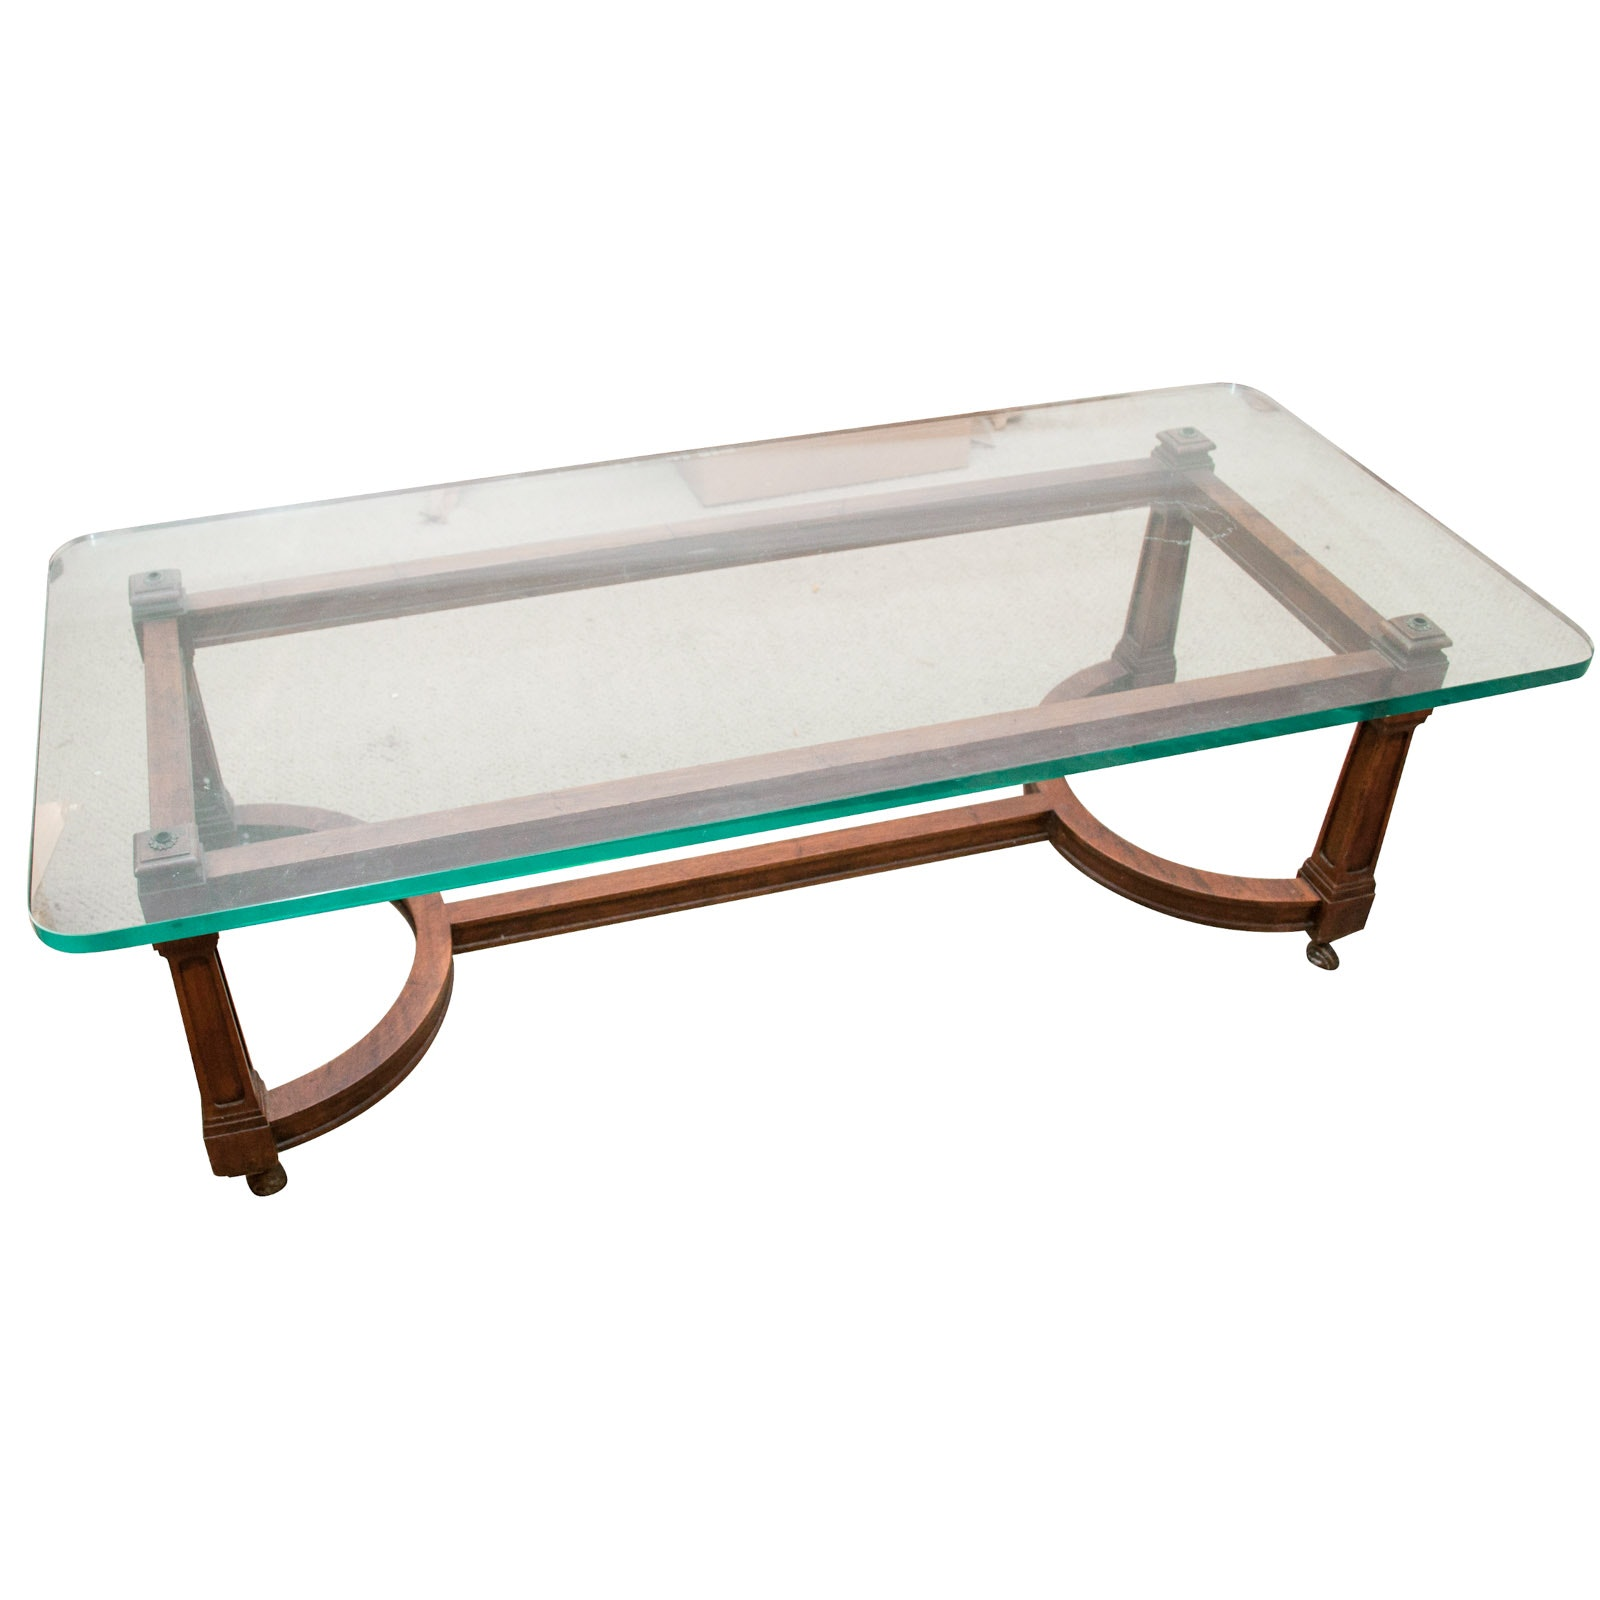 Mahogany Glass Topped Coffee Table, Mid to Late 20th Century